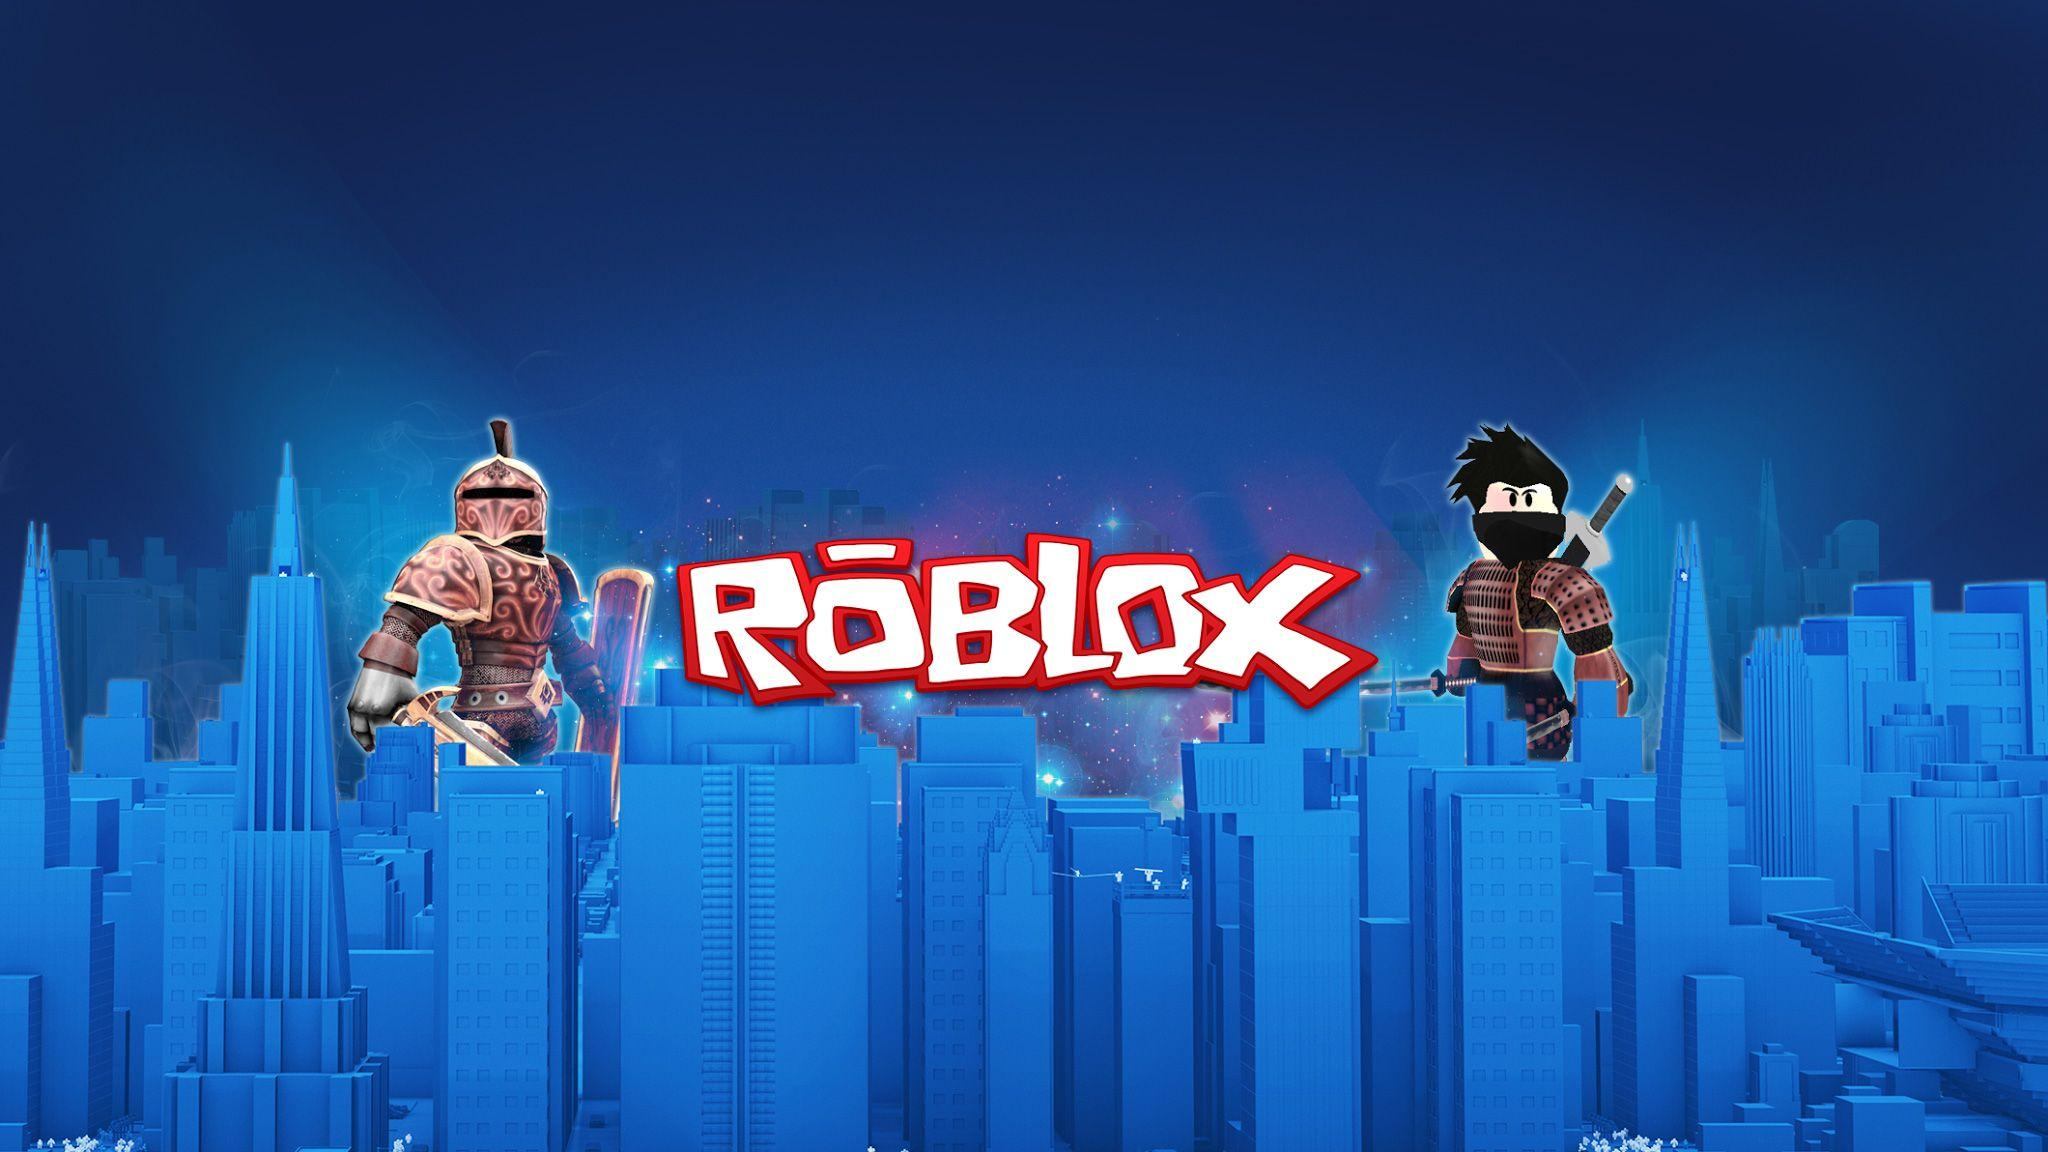 roblox wallpapers wallpaper cave